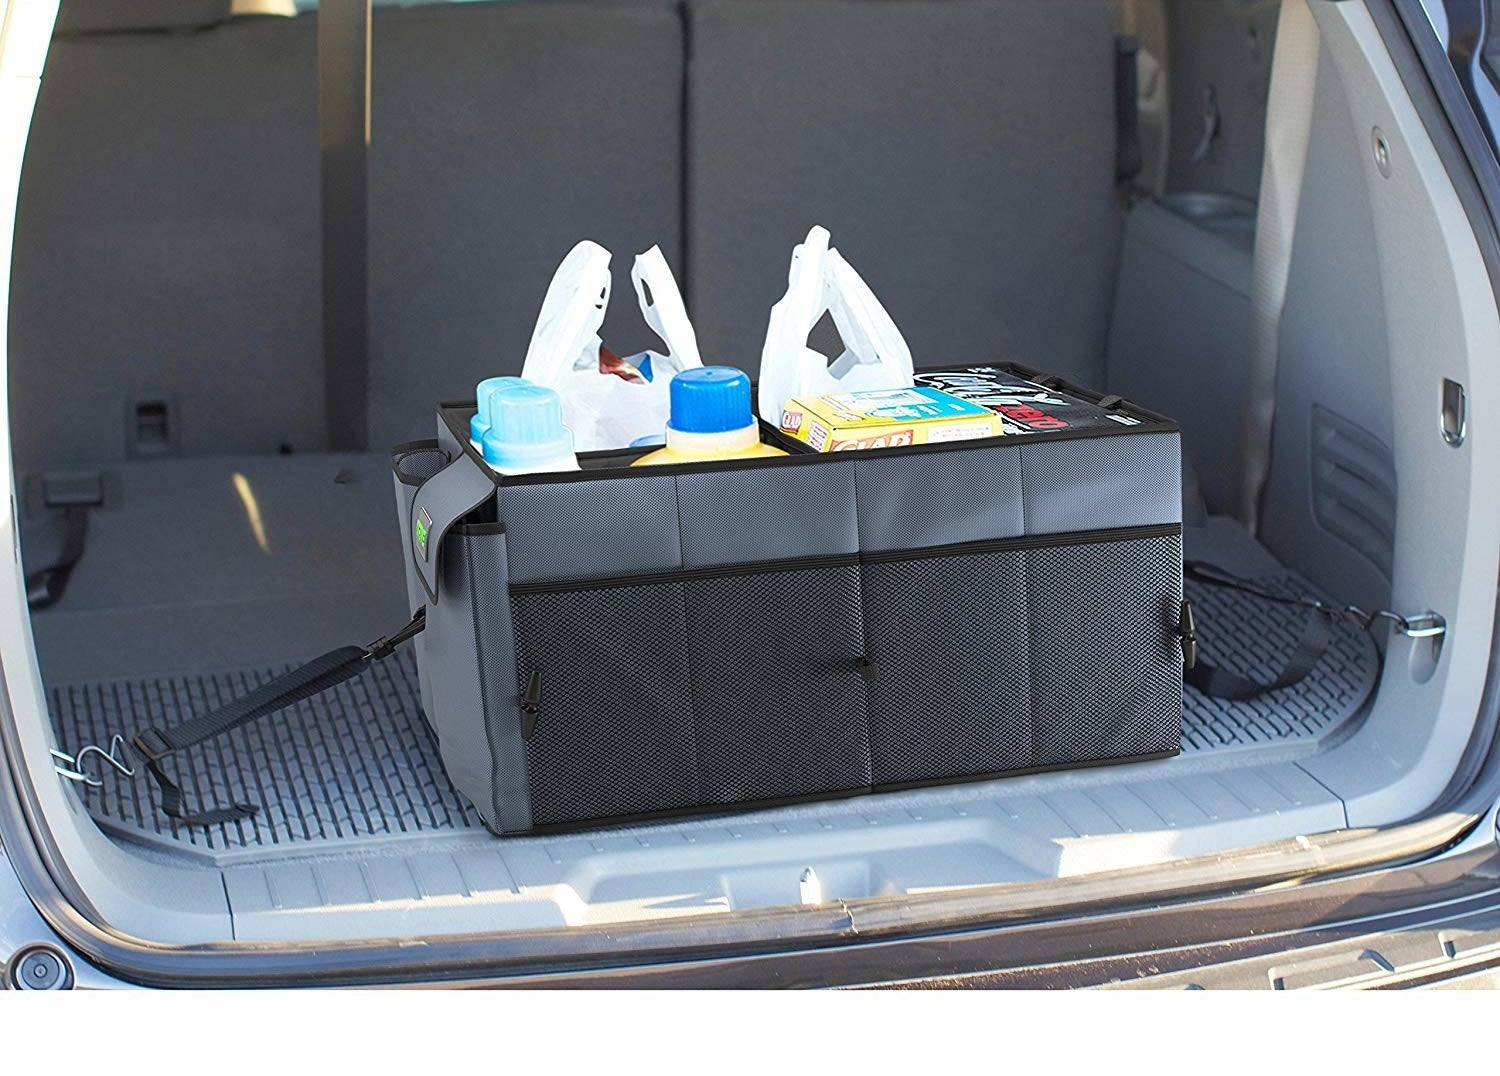 A large rectangular fabric box in the back of a car filled with groceries There are straps on each side that are connected to clips on the sides of the car